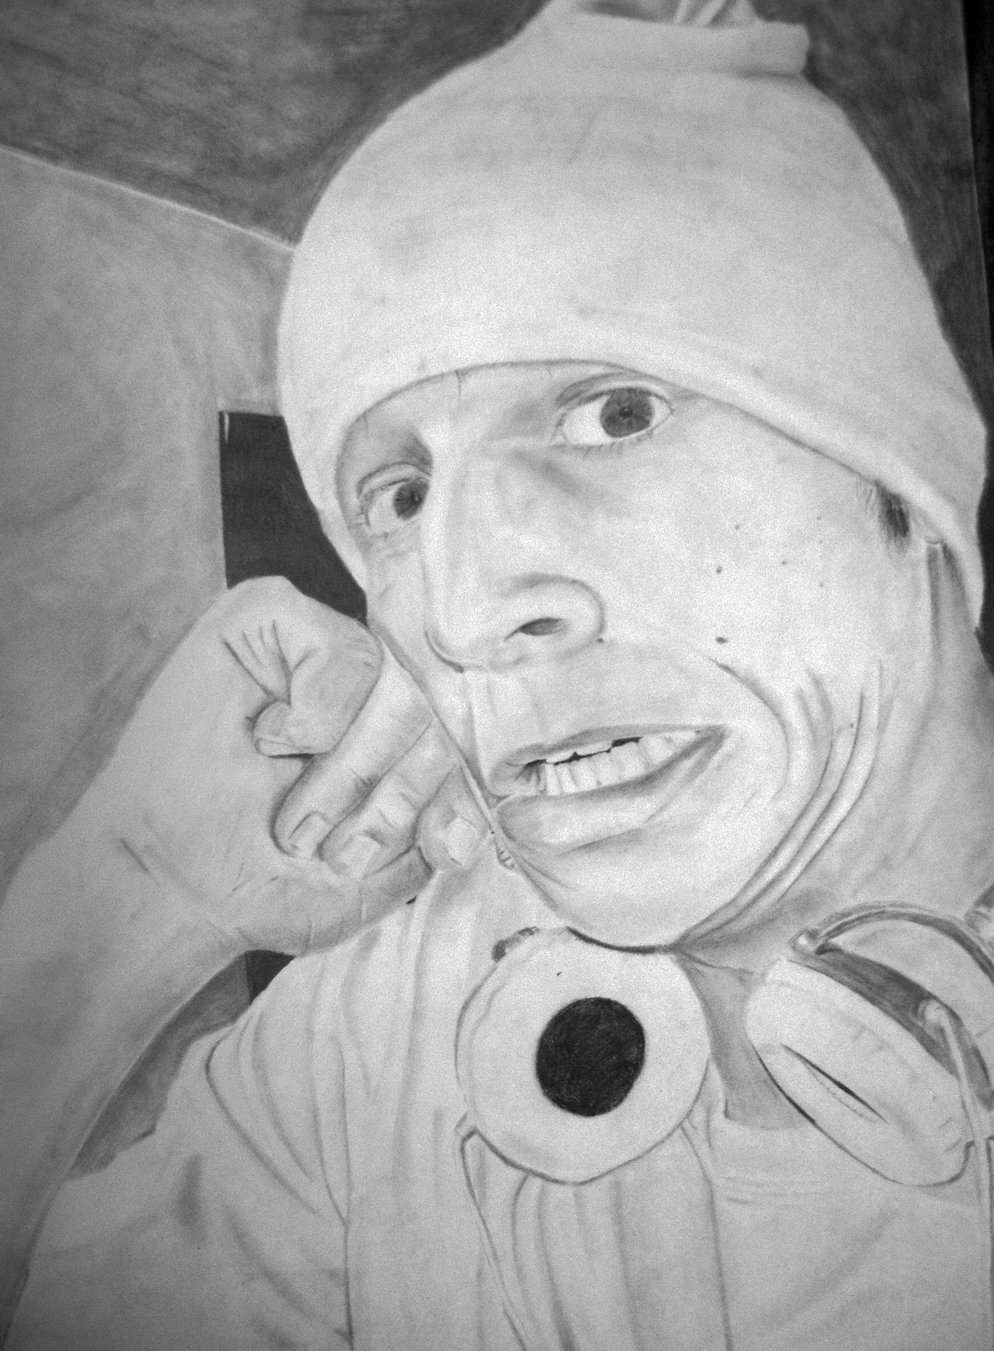 Final self portrait for drawing class